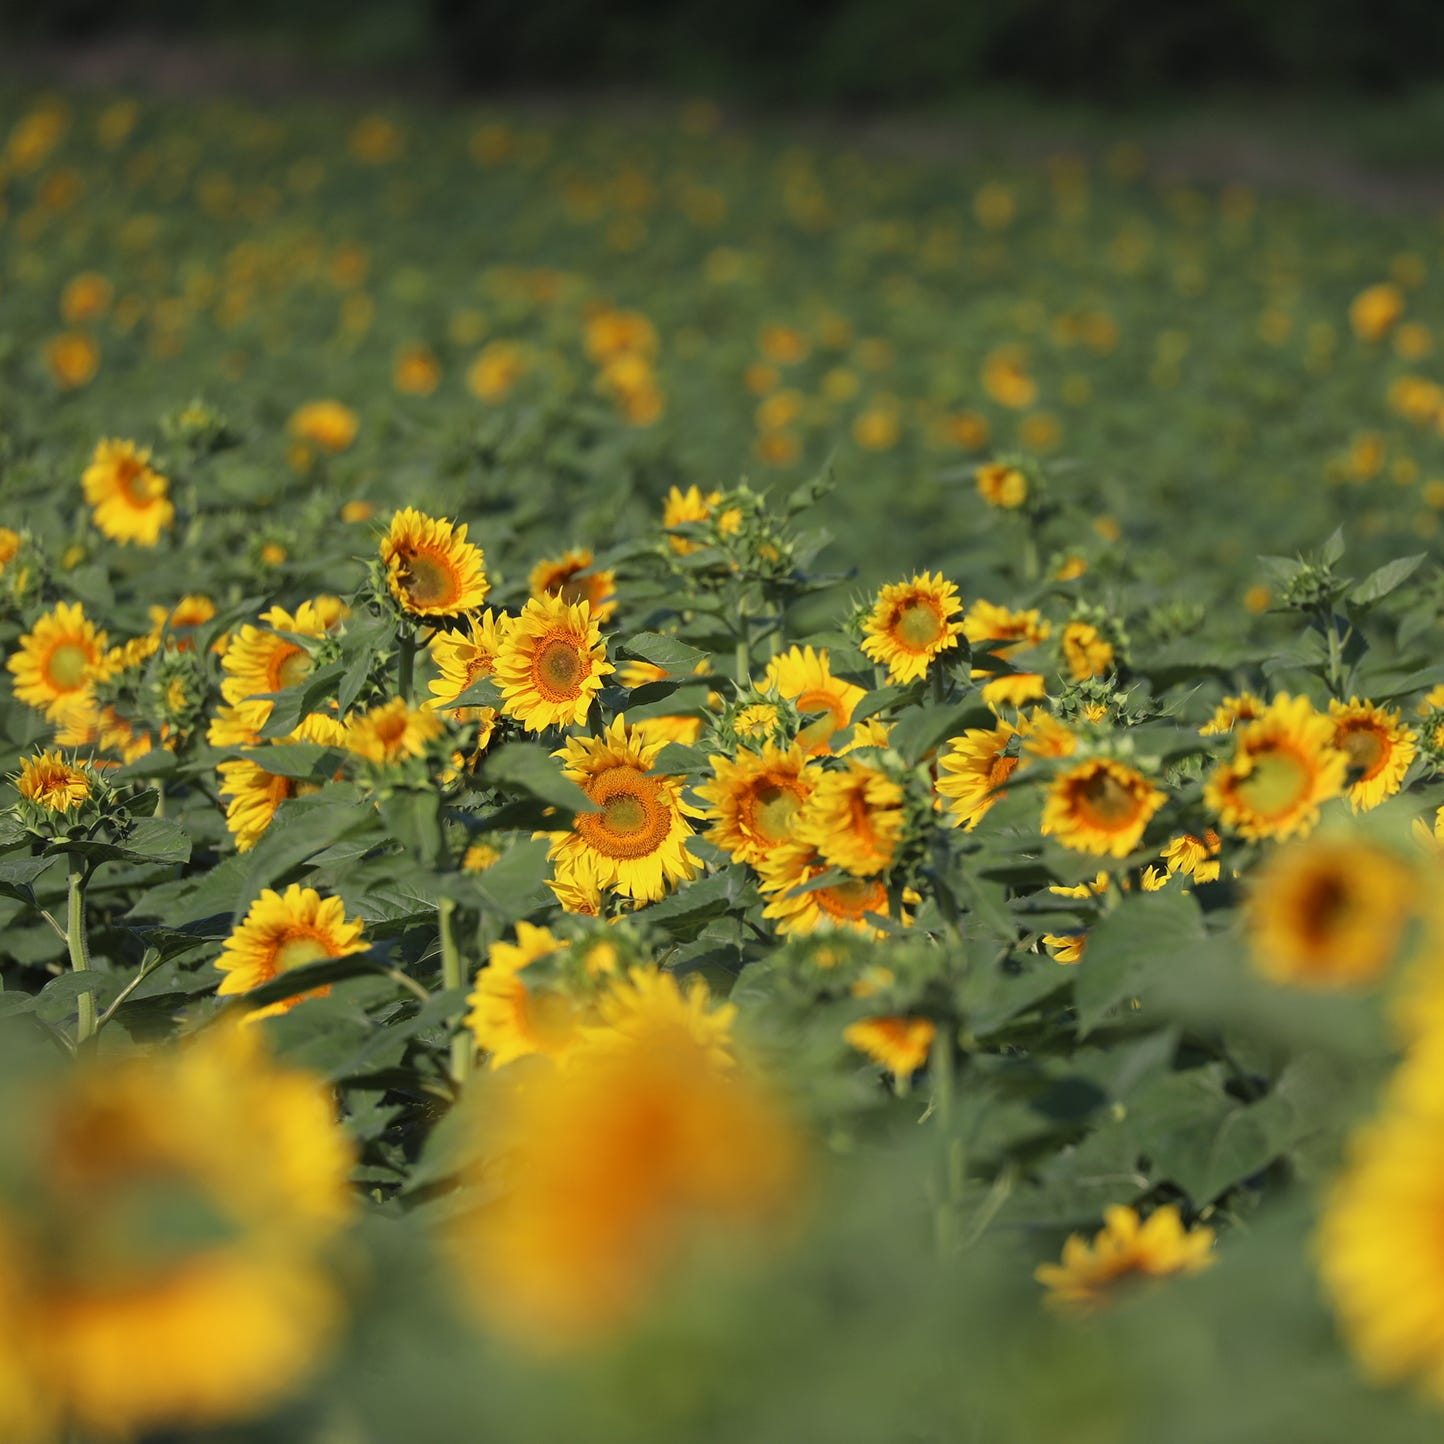 The sunflowers are out again in Pittsford: Look but don't trample